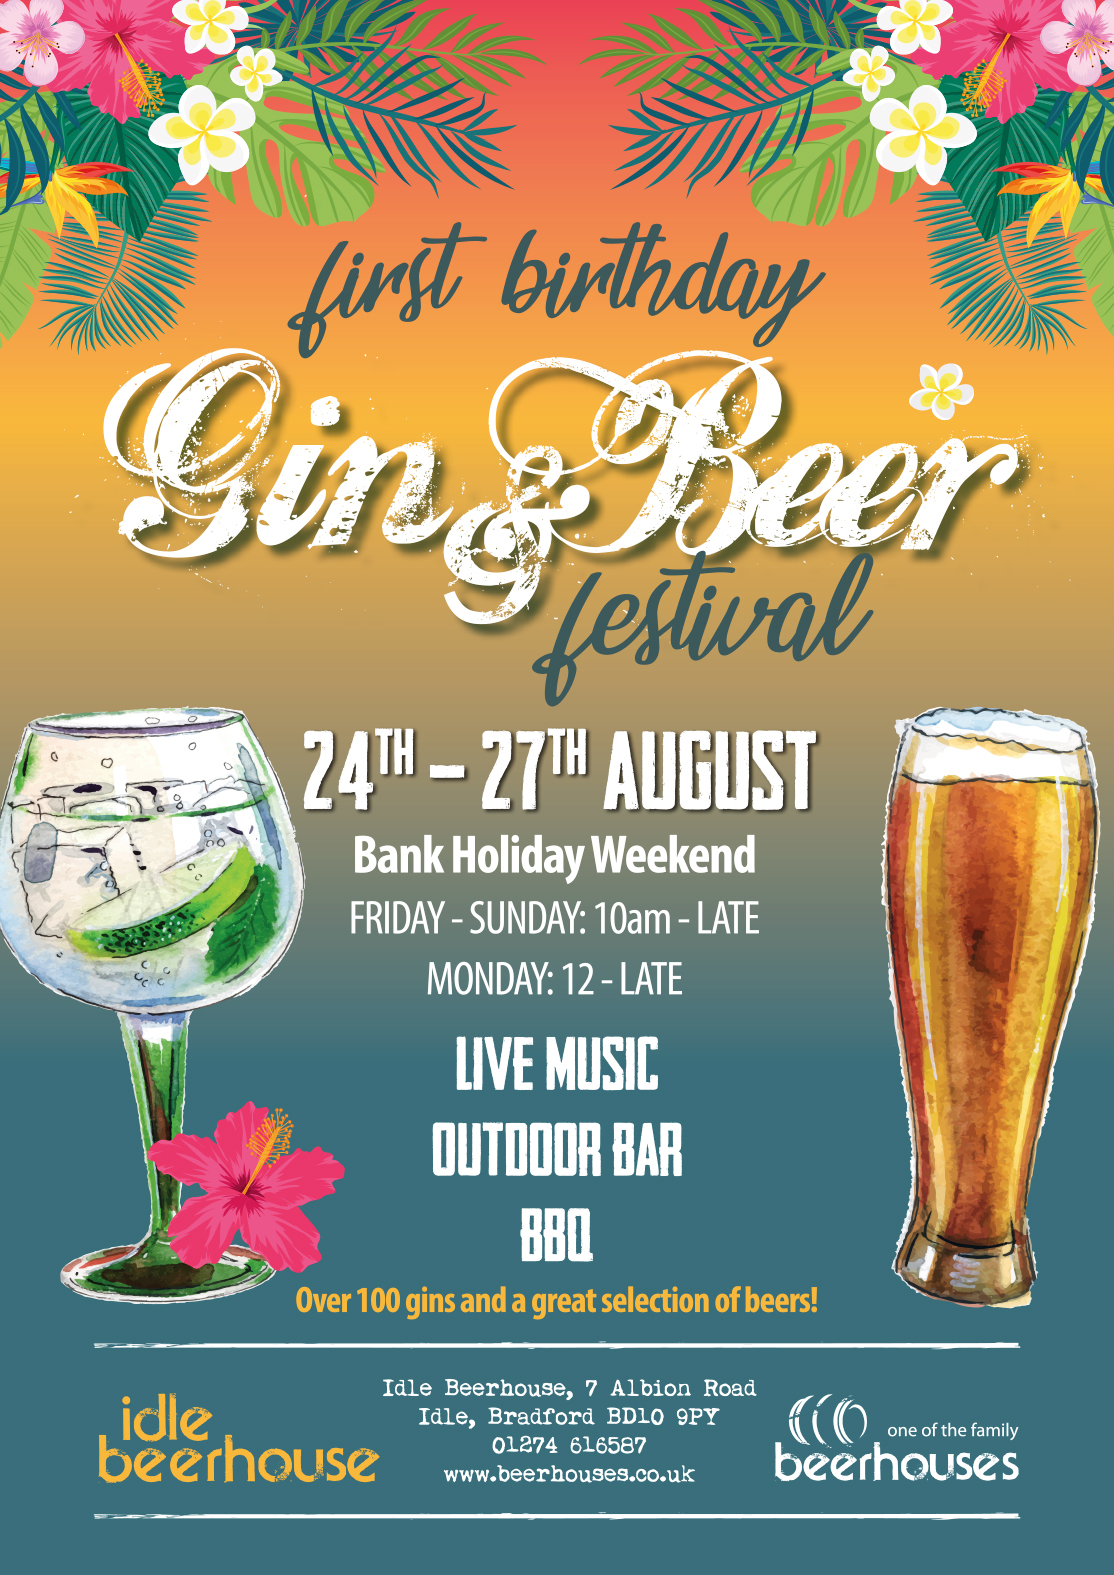 Idle Beerhouse Gin and Beer Festival